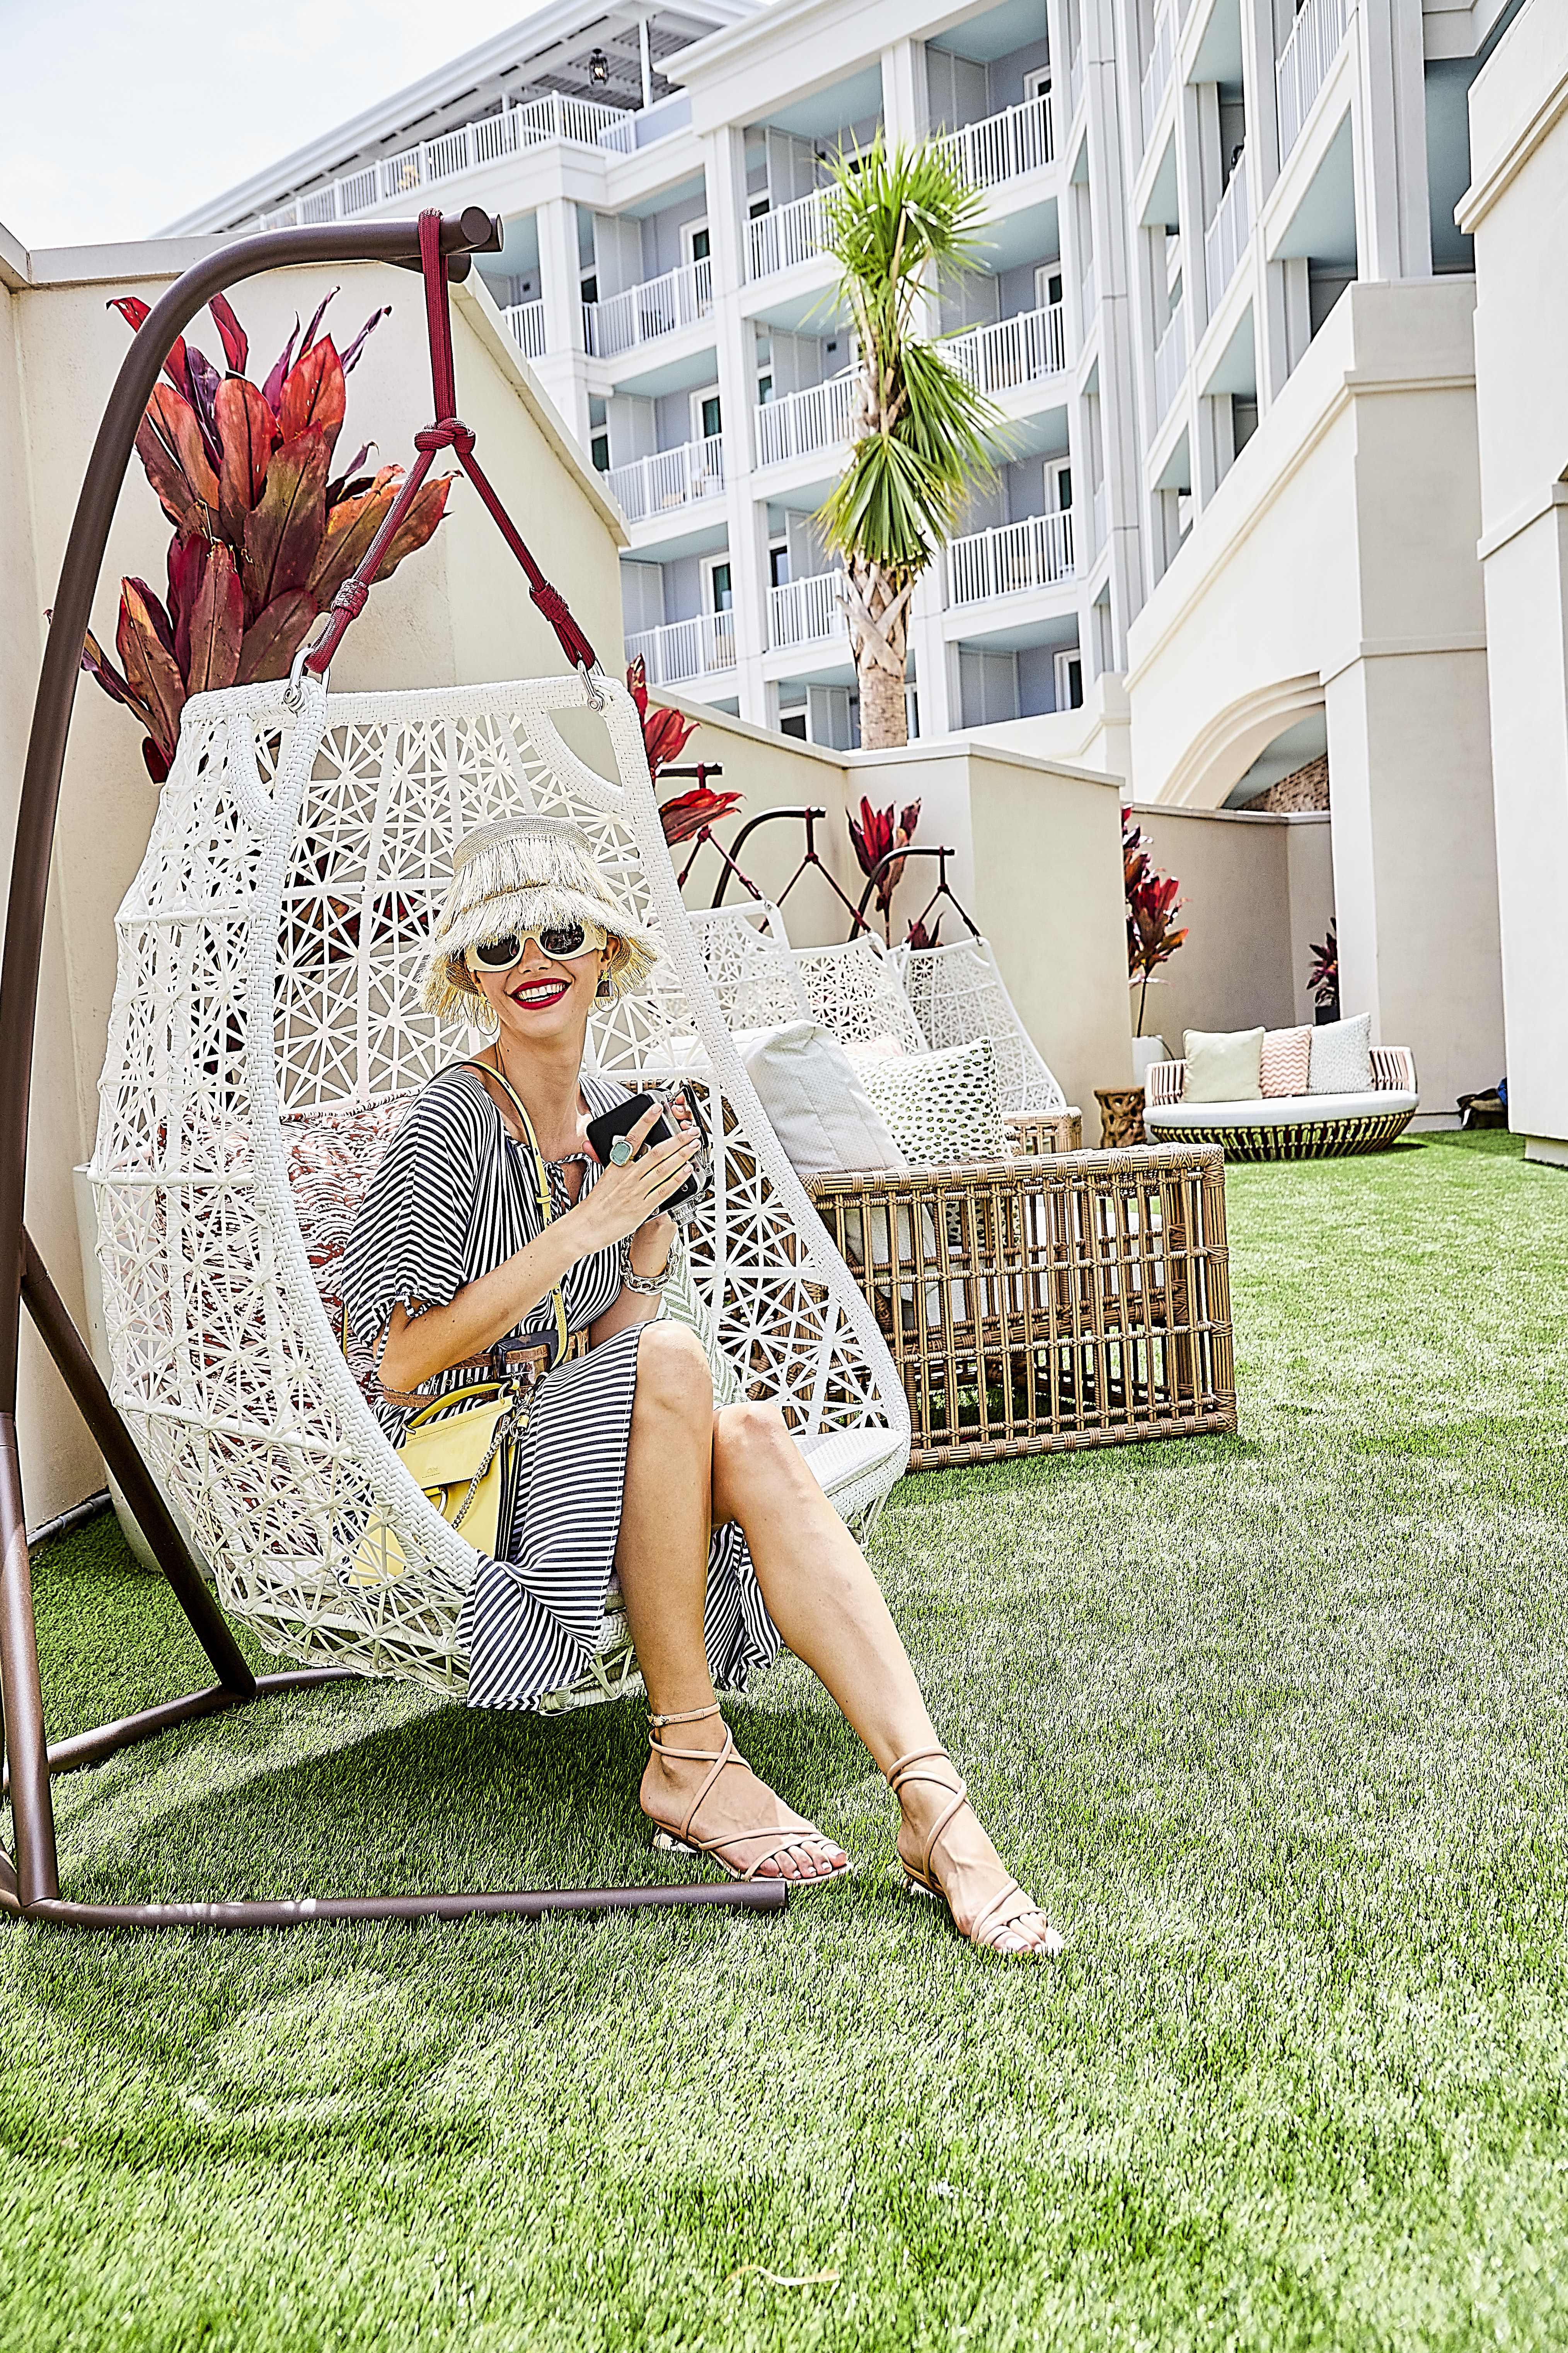 """In a Snap: Peserico striped poplin shirt, $392 at Peserico at The Shops at Belmond Charleston Place; Gucci sunglasses, $1,740, and Nicholas Kirkwood """"Beya"""" sandal, $595, both at Gwynn's of Mount Pleasant; Sensi Studio frayed lamp shade hat, $195, and Staud croc-effect leather-trimmed belt, $50, both at Harper and Hartford; Roberto Coin """"Princess Flower"""" hoop earrings, $4,200 at M.P. Demetre Jewelers;  Chloe """"Faye"""" bag, $1,750 at RTW; gold bangle, $1,650, gold link bracelet; $1,650; gold bangle, $2,540, aquamarine and diamond ring, $3,960, and 47-carat aquamarine and diamond ring, $5,275, all at Croghan's Jewel Box; camera courtesy of Terrace Oaks Antiques"""